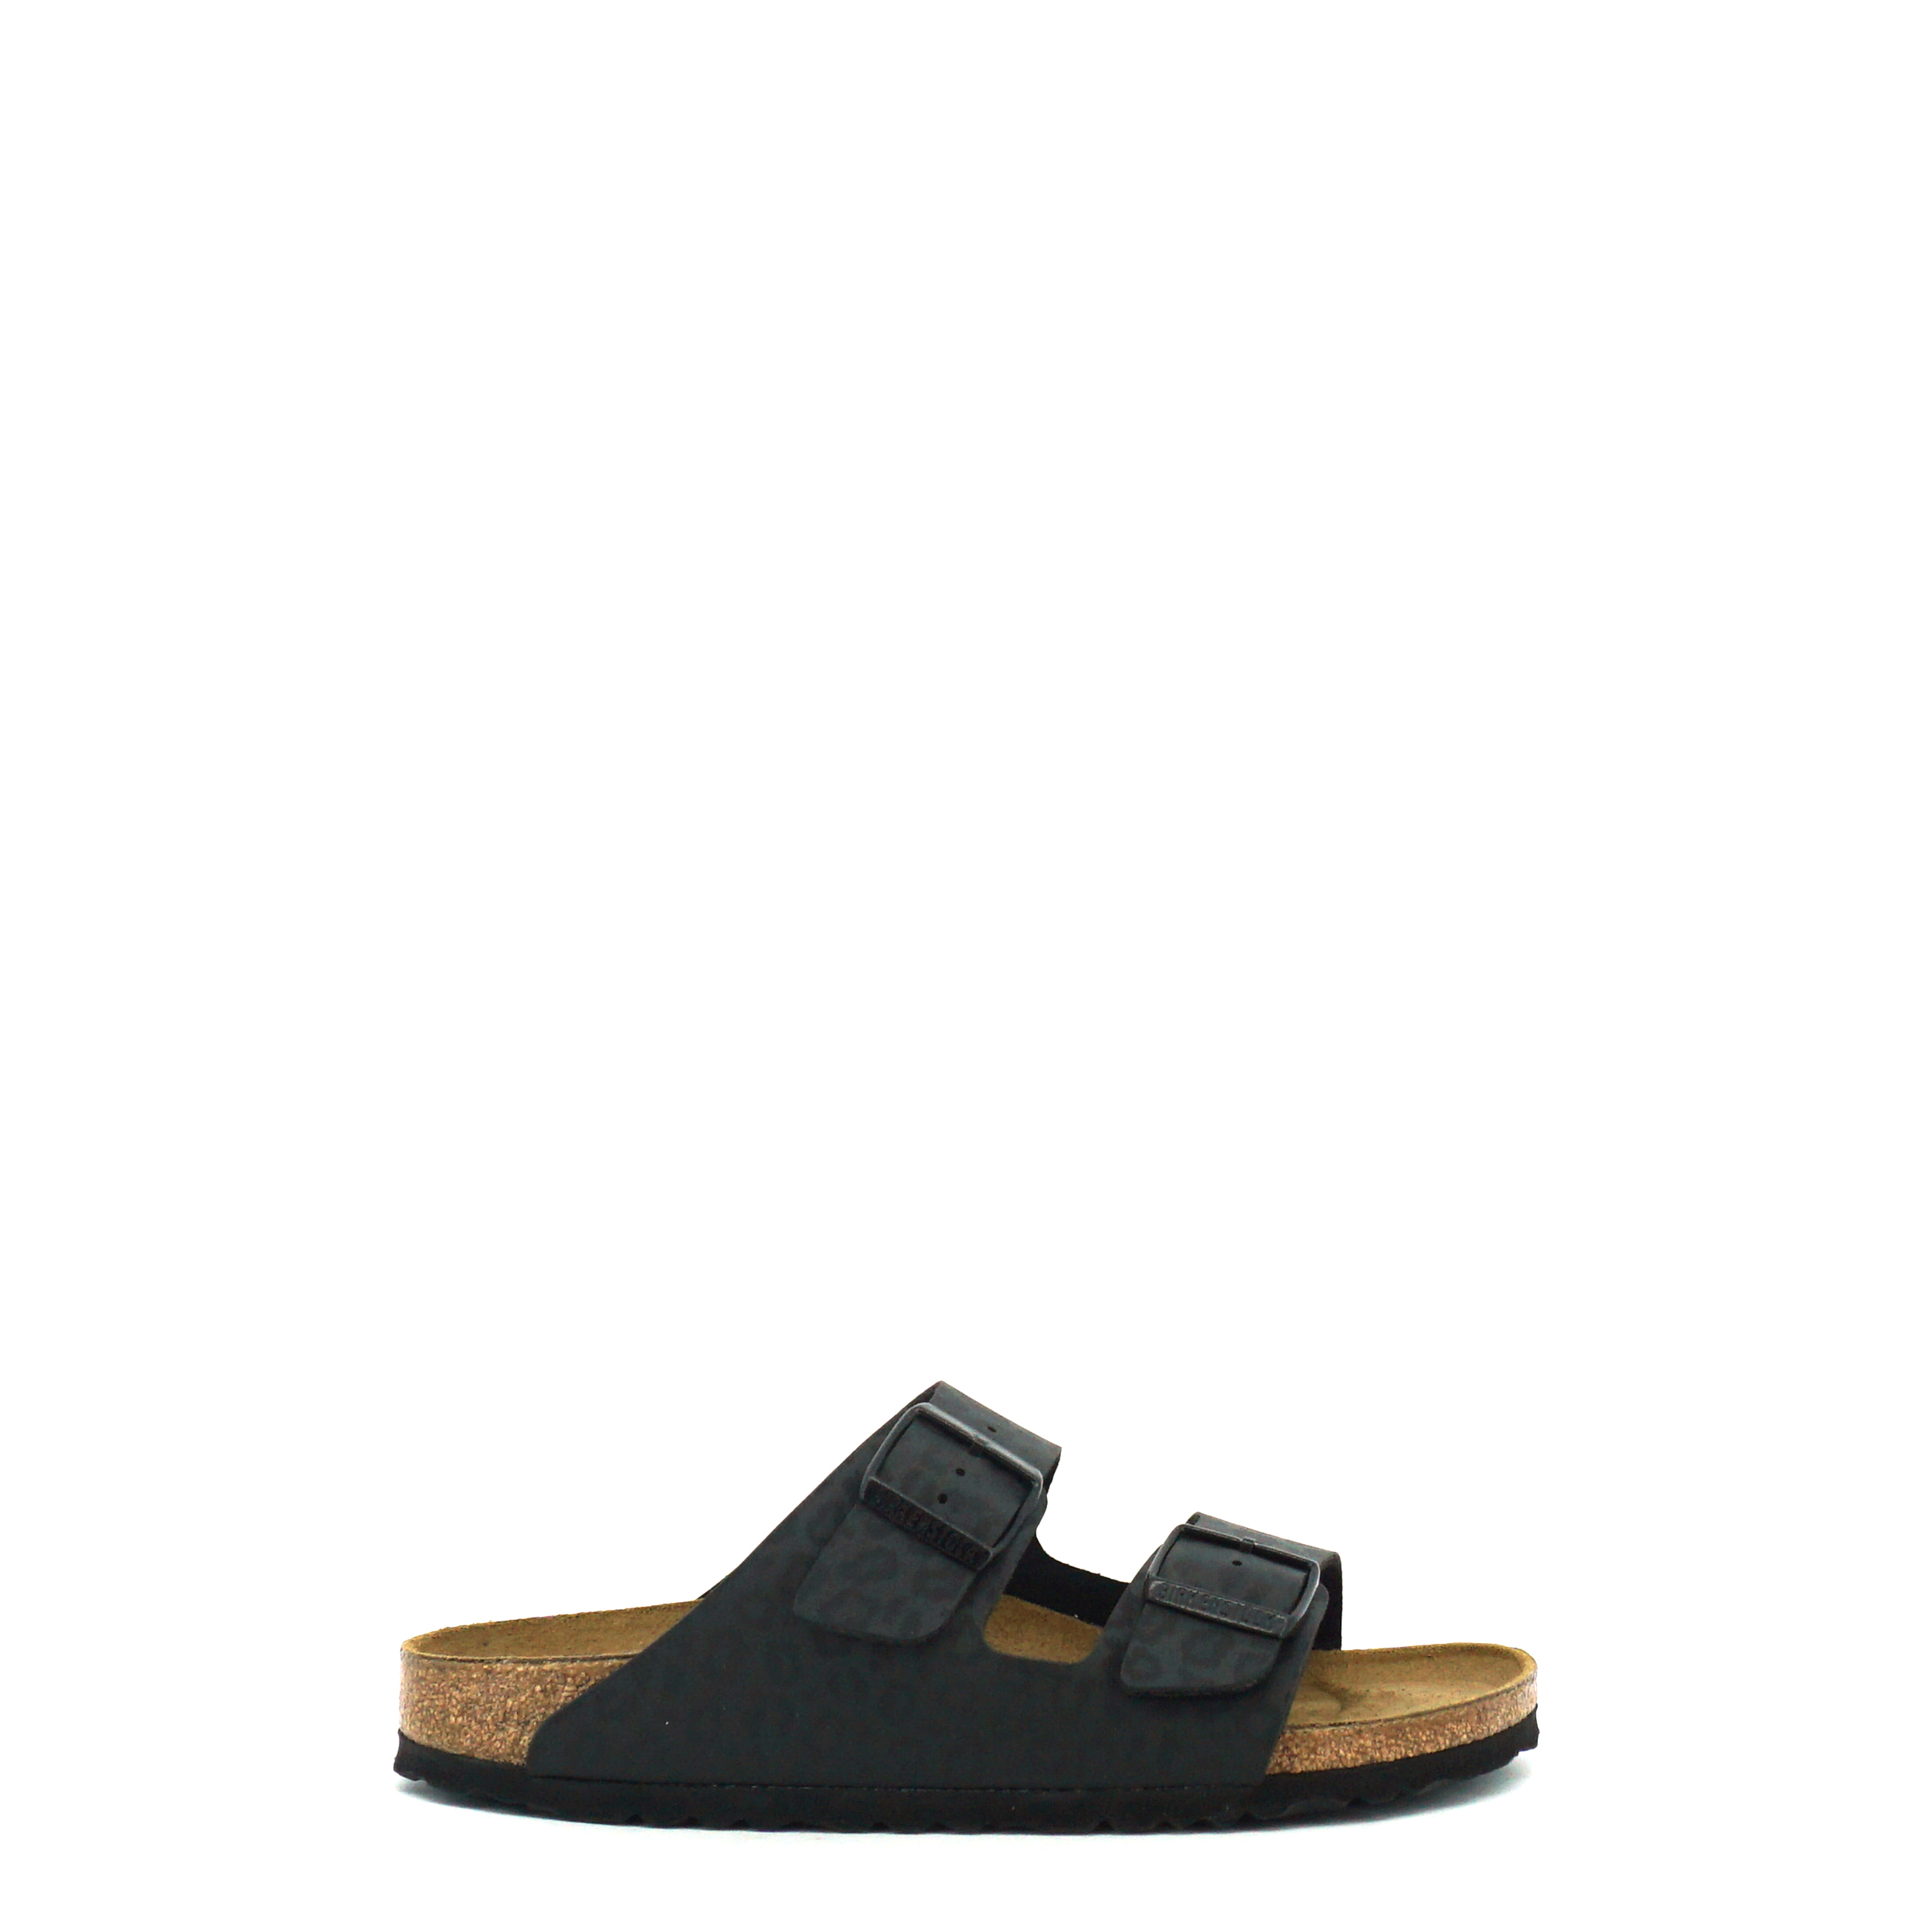 Birkenstock Arizona zwart slipper dames